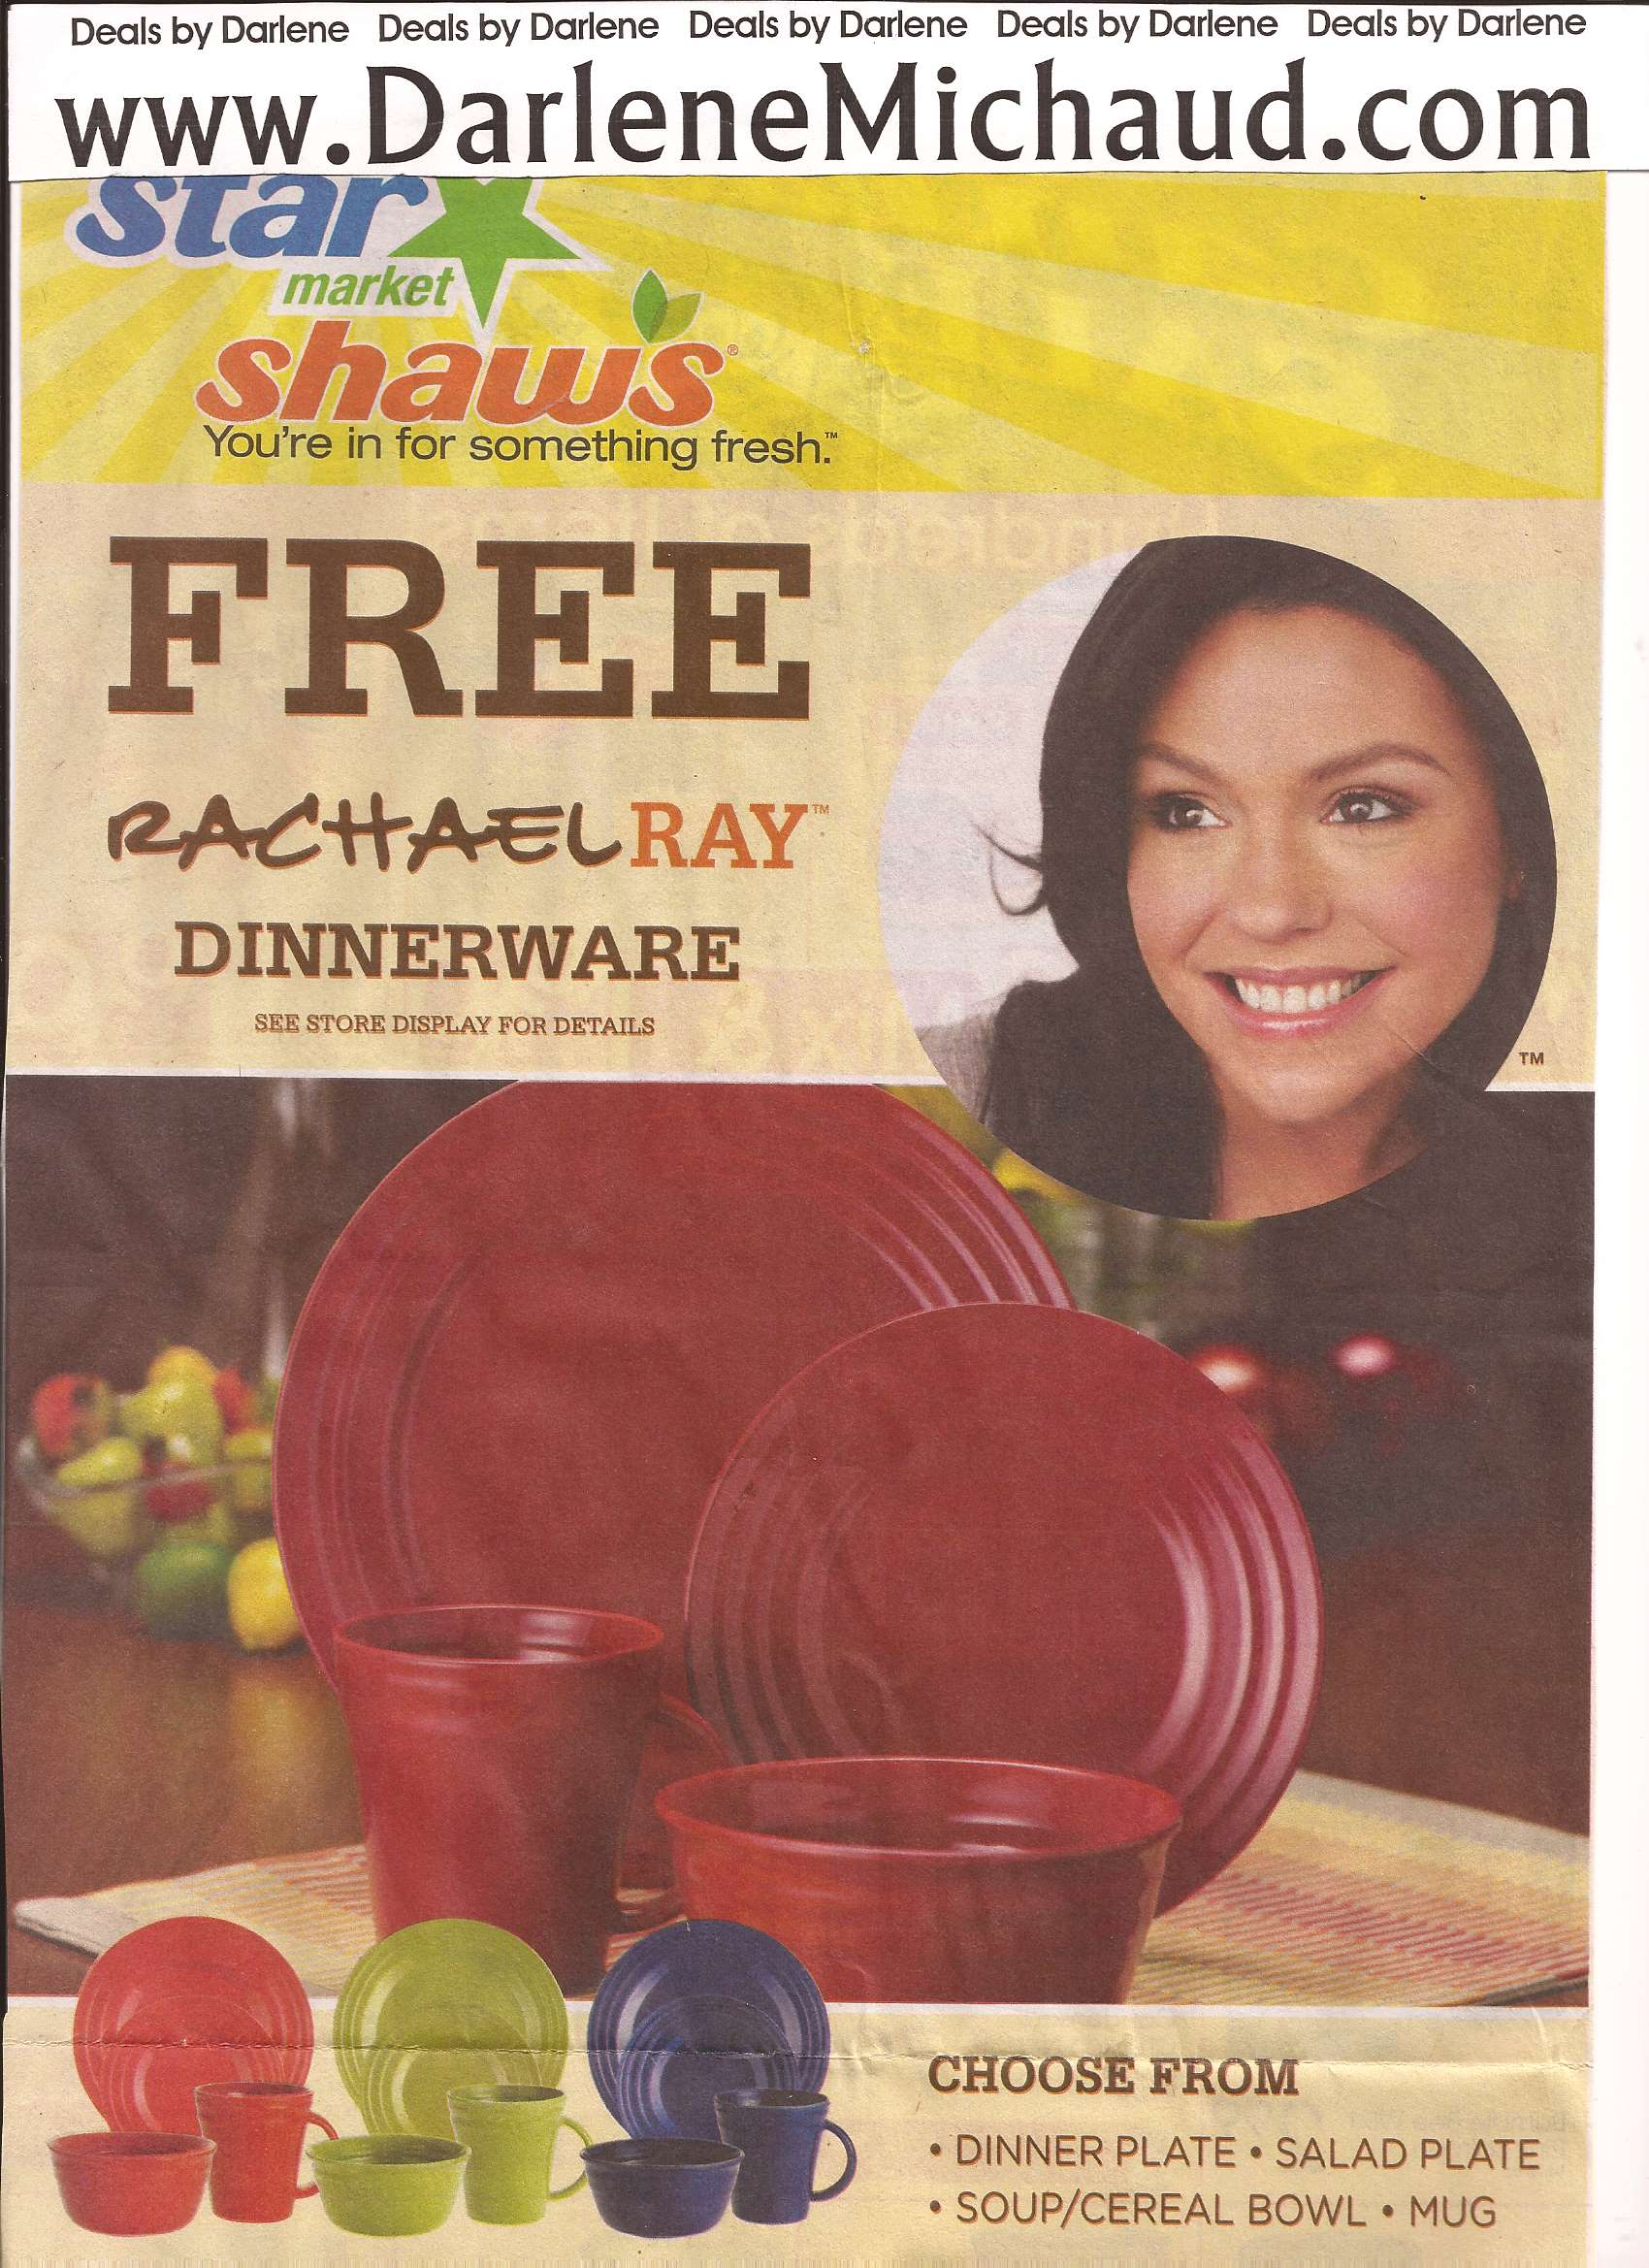 shaws-flyer-preview-96-912-7a